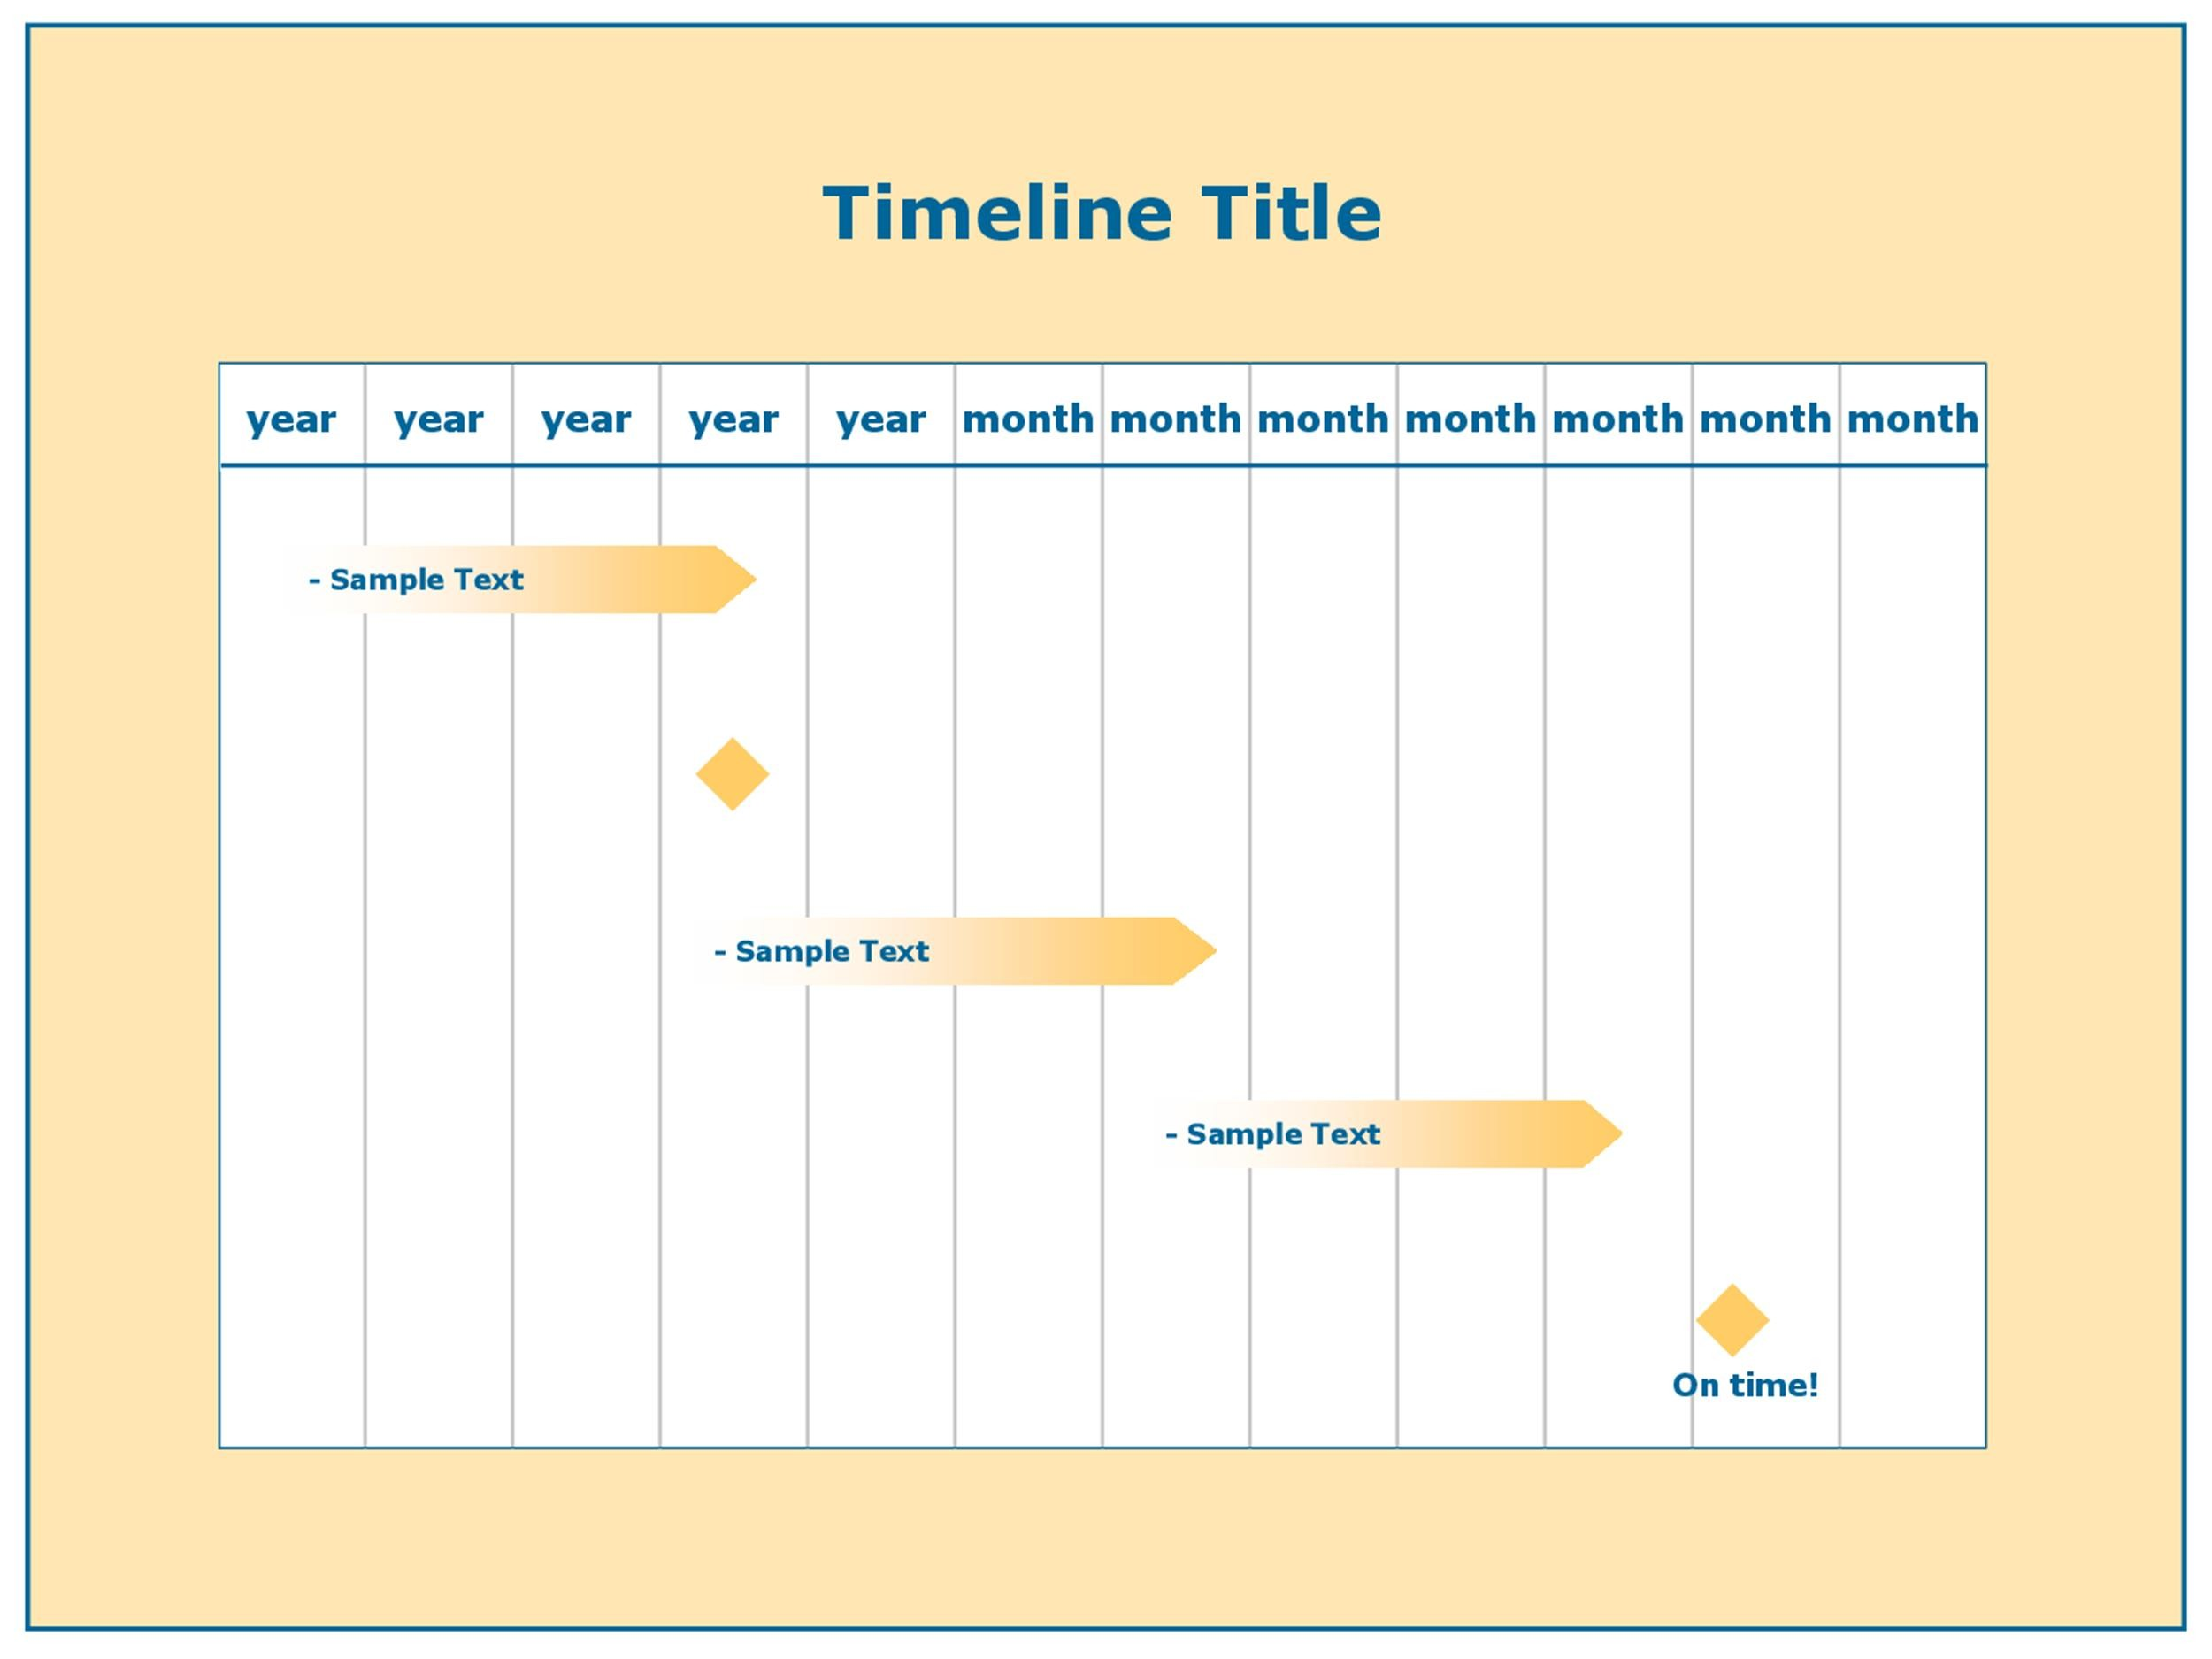 30+ Timeline Templates (Excel, Power Point, Word) ᐅ Template Lab